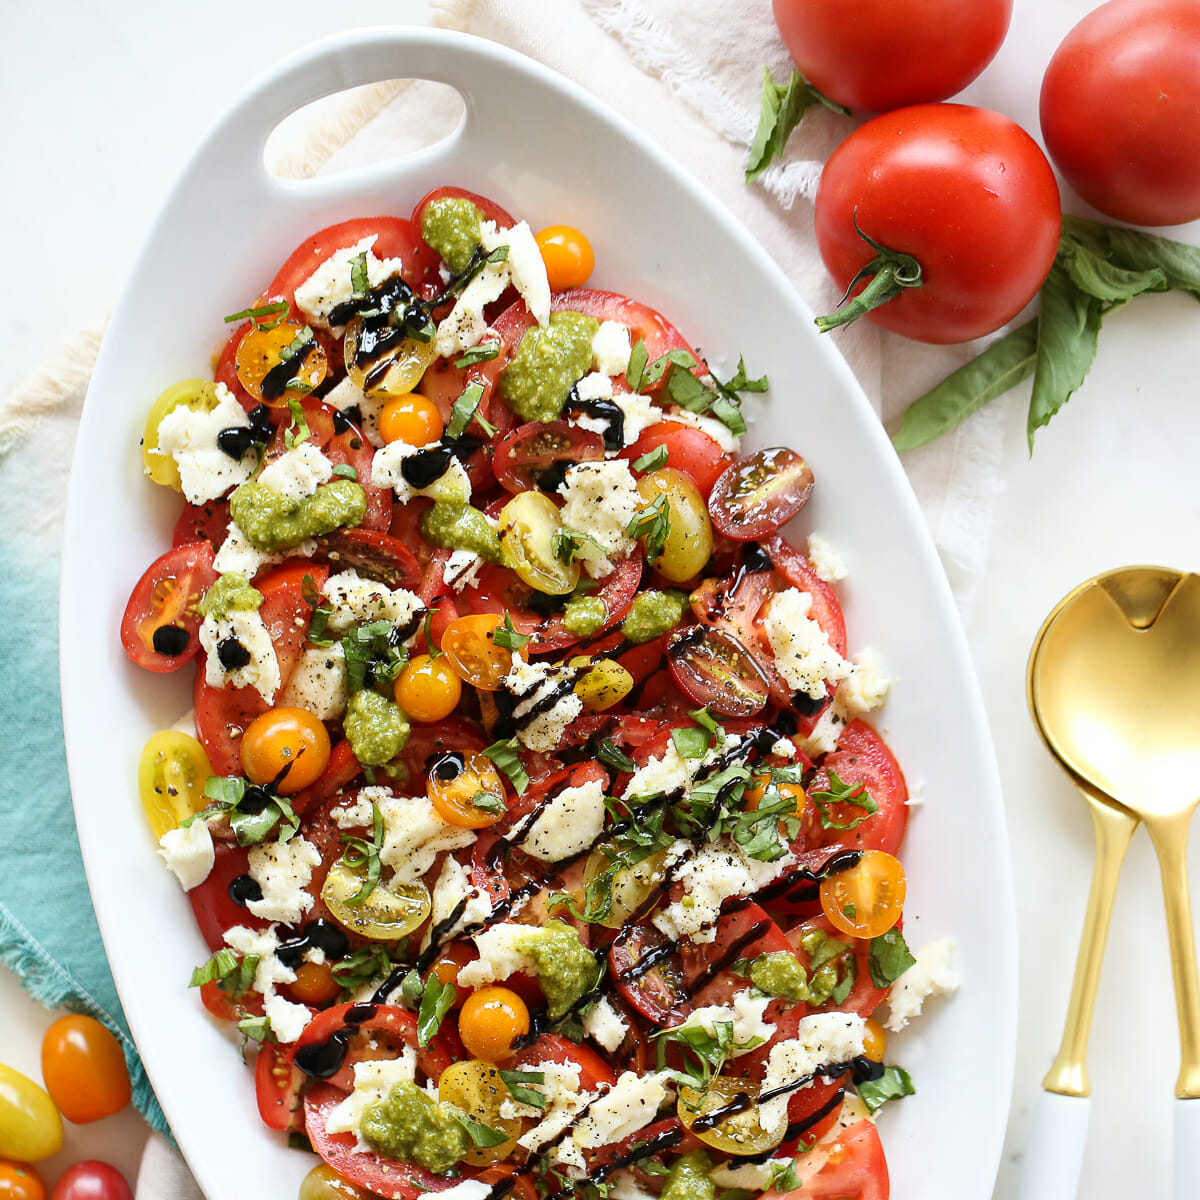 Layered Caprese Salad in a Serving Dish